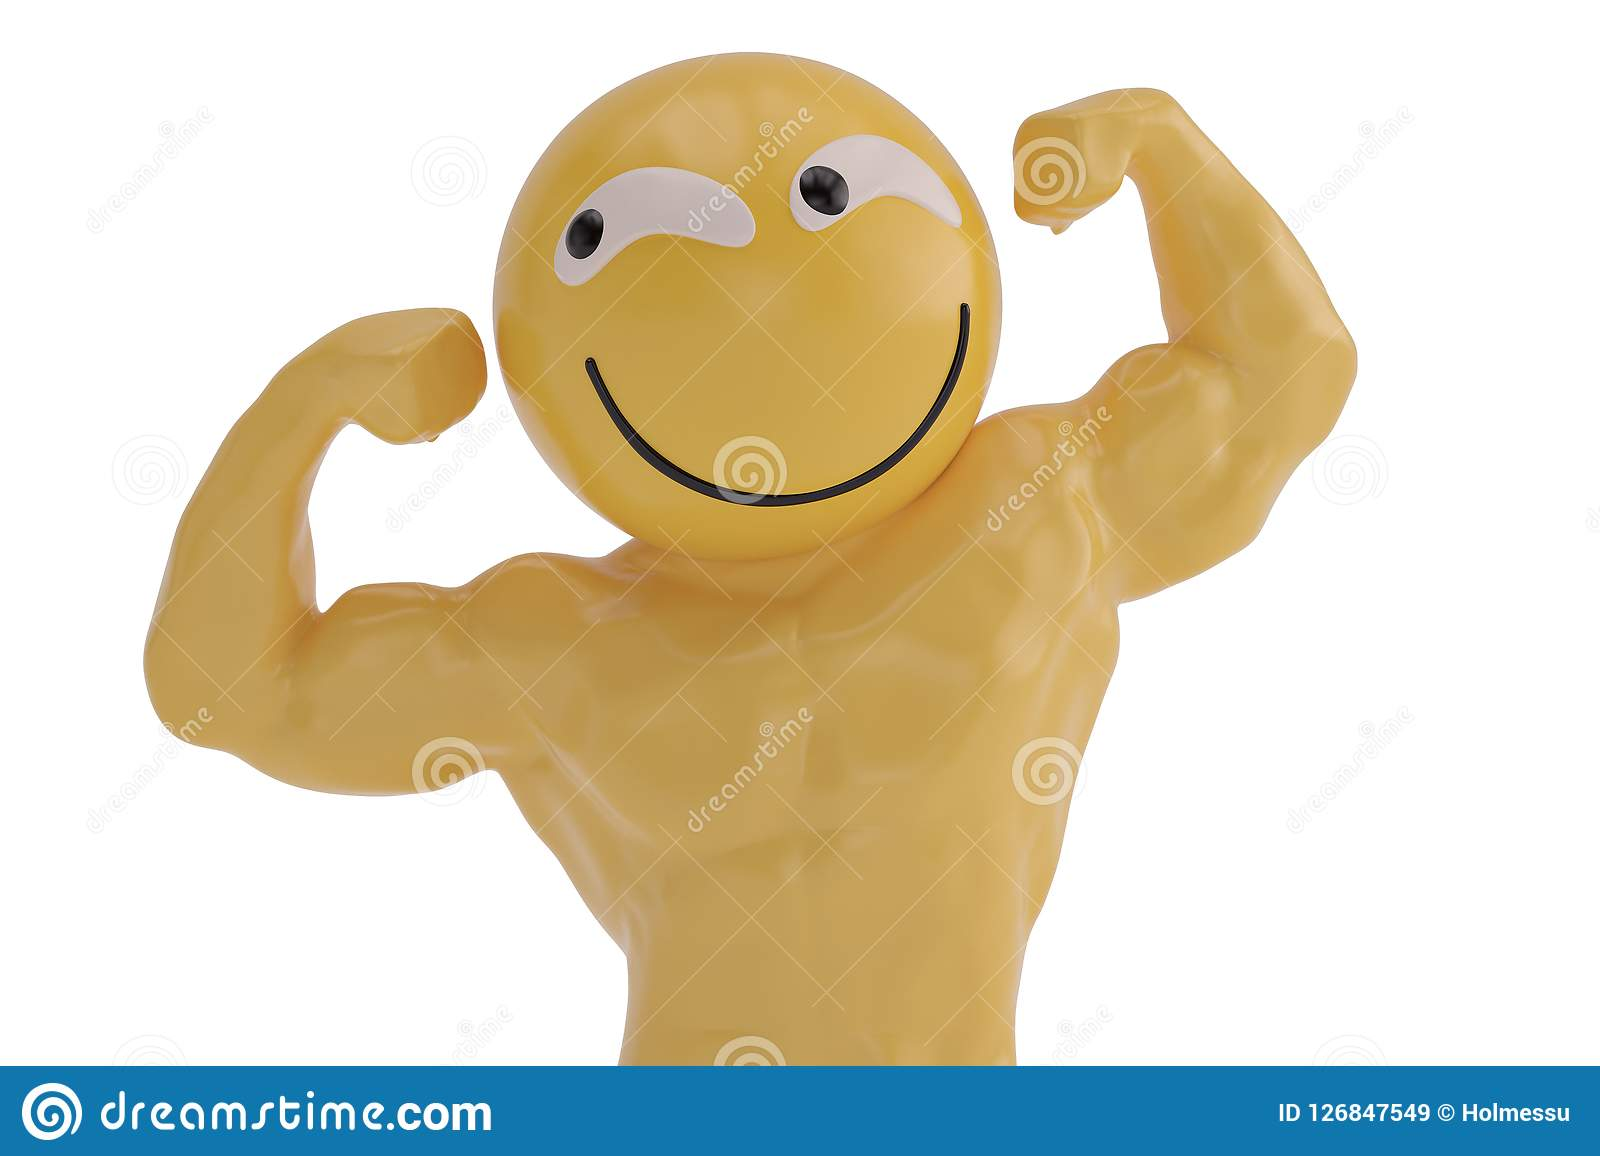 Muscle Emoticon Stock Illustrations 513 Muscle Emoticon Stock Illustrations Vectors Clipart Dreamstime